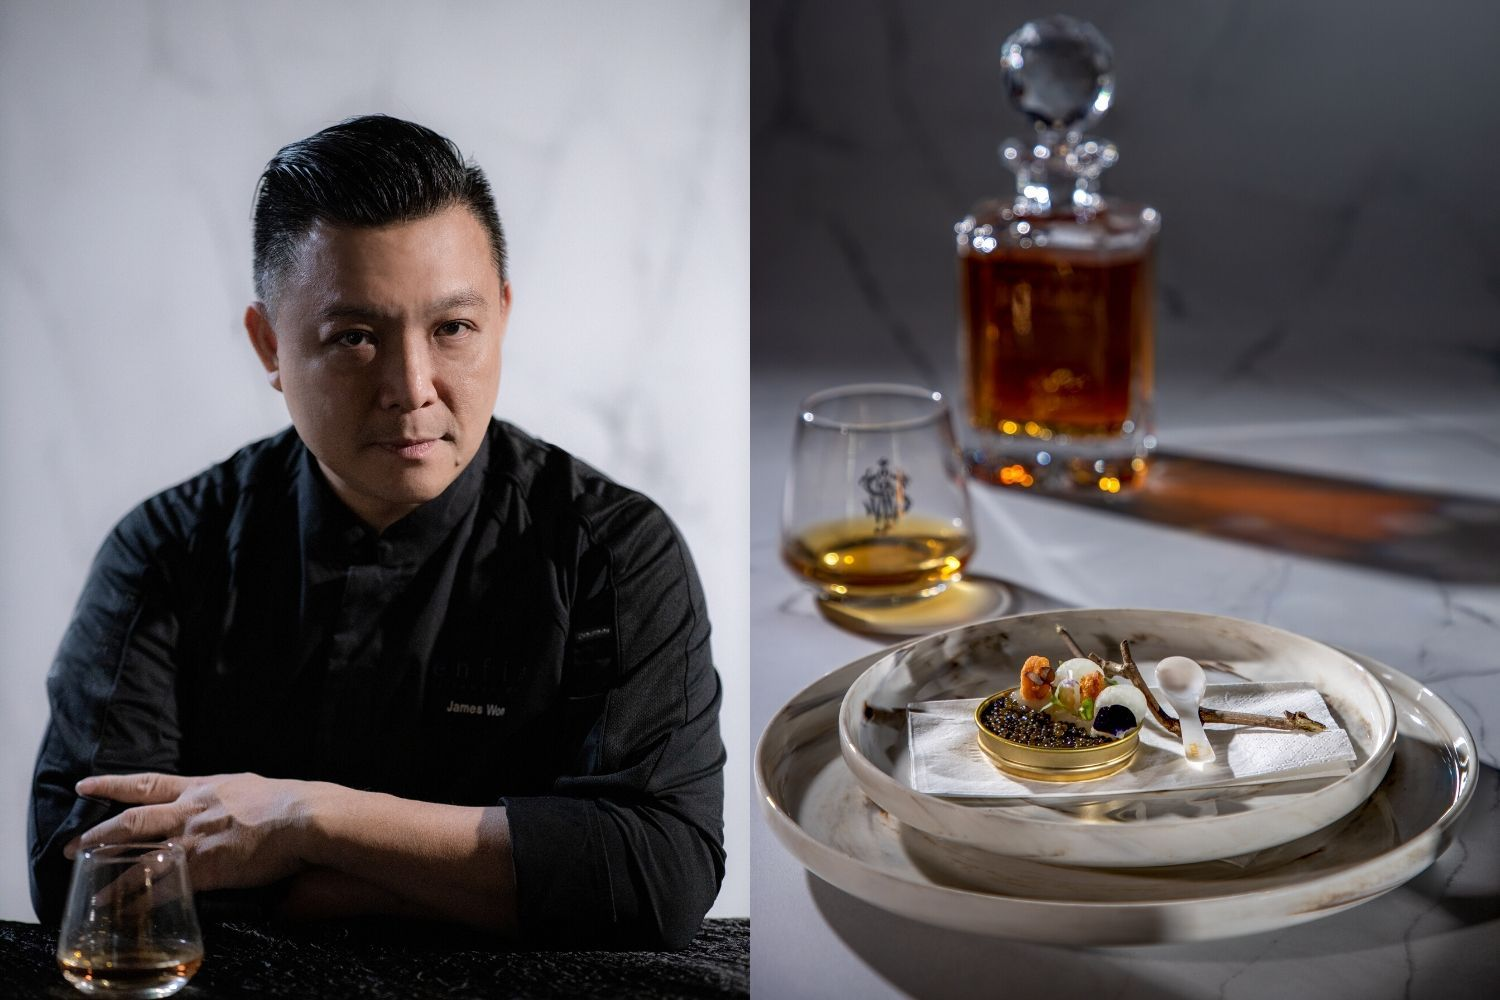 Johnnie Walker Blue Label & Enfin By James Won: A Collaboration We'll Drink To